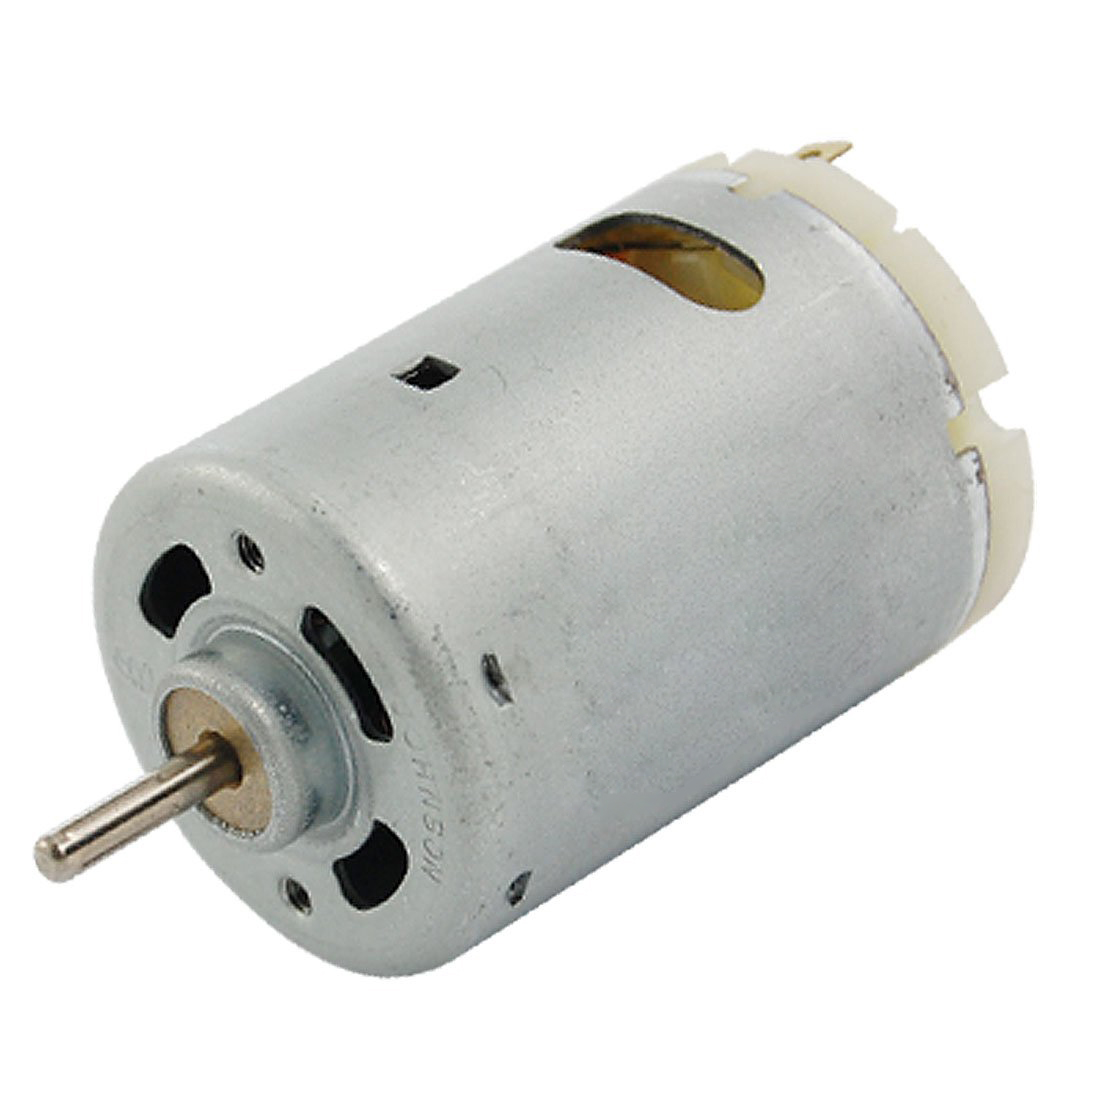 DC 12V 1.8A 15000RPM High Torque Electric Motor for DIY Cars Toys N3 ...